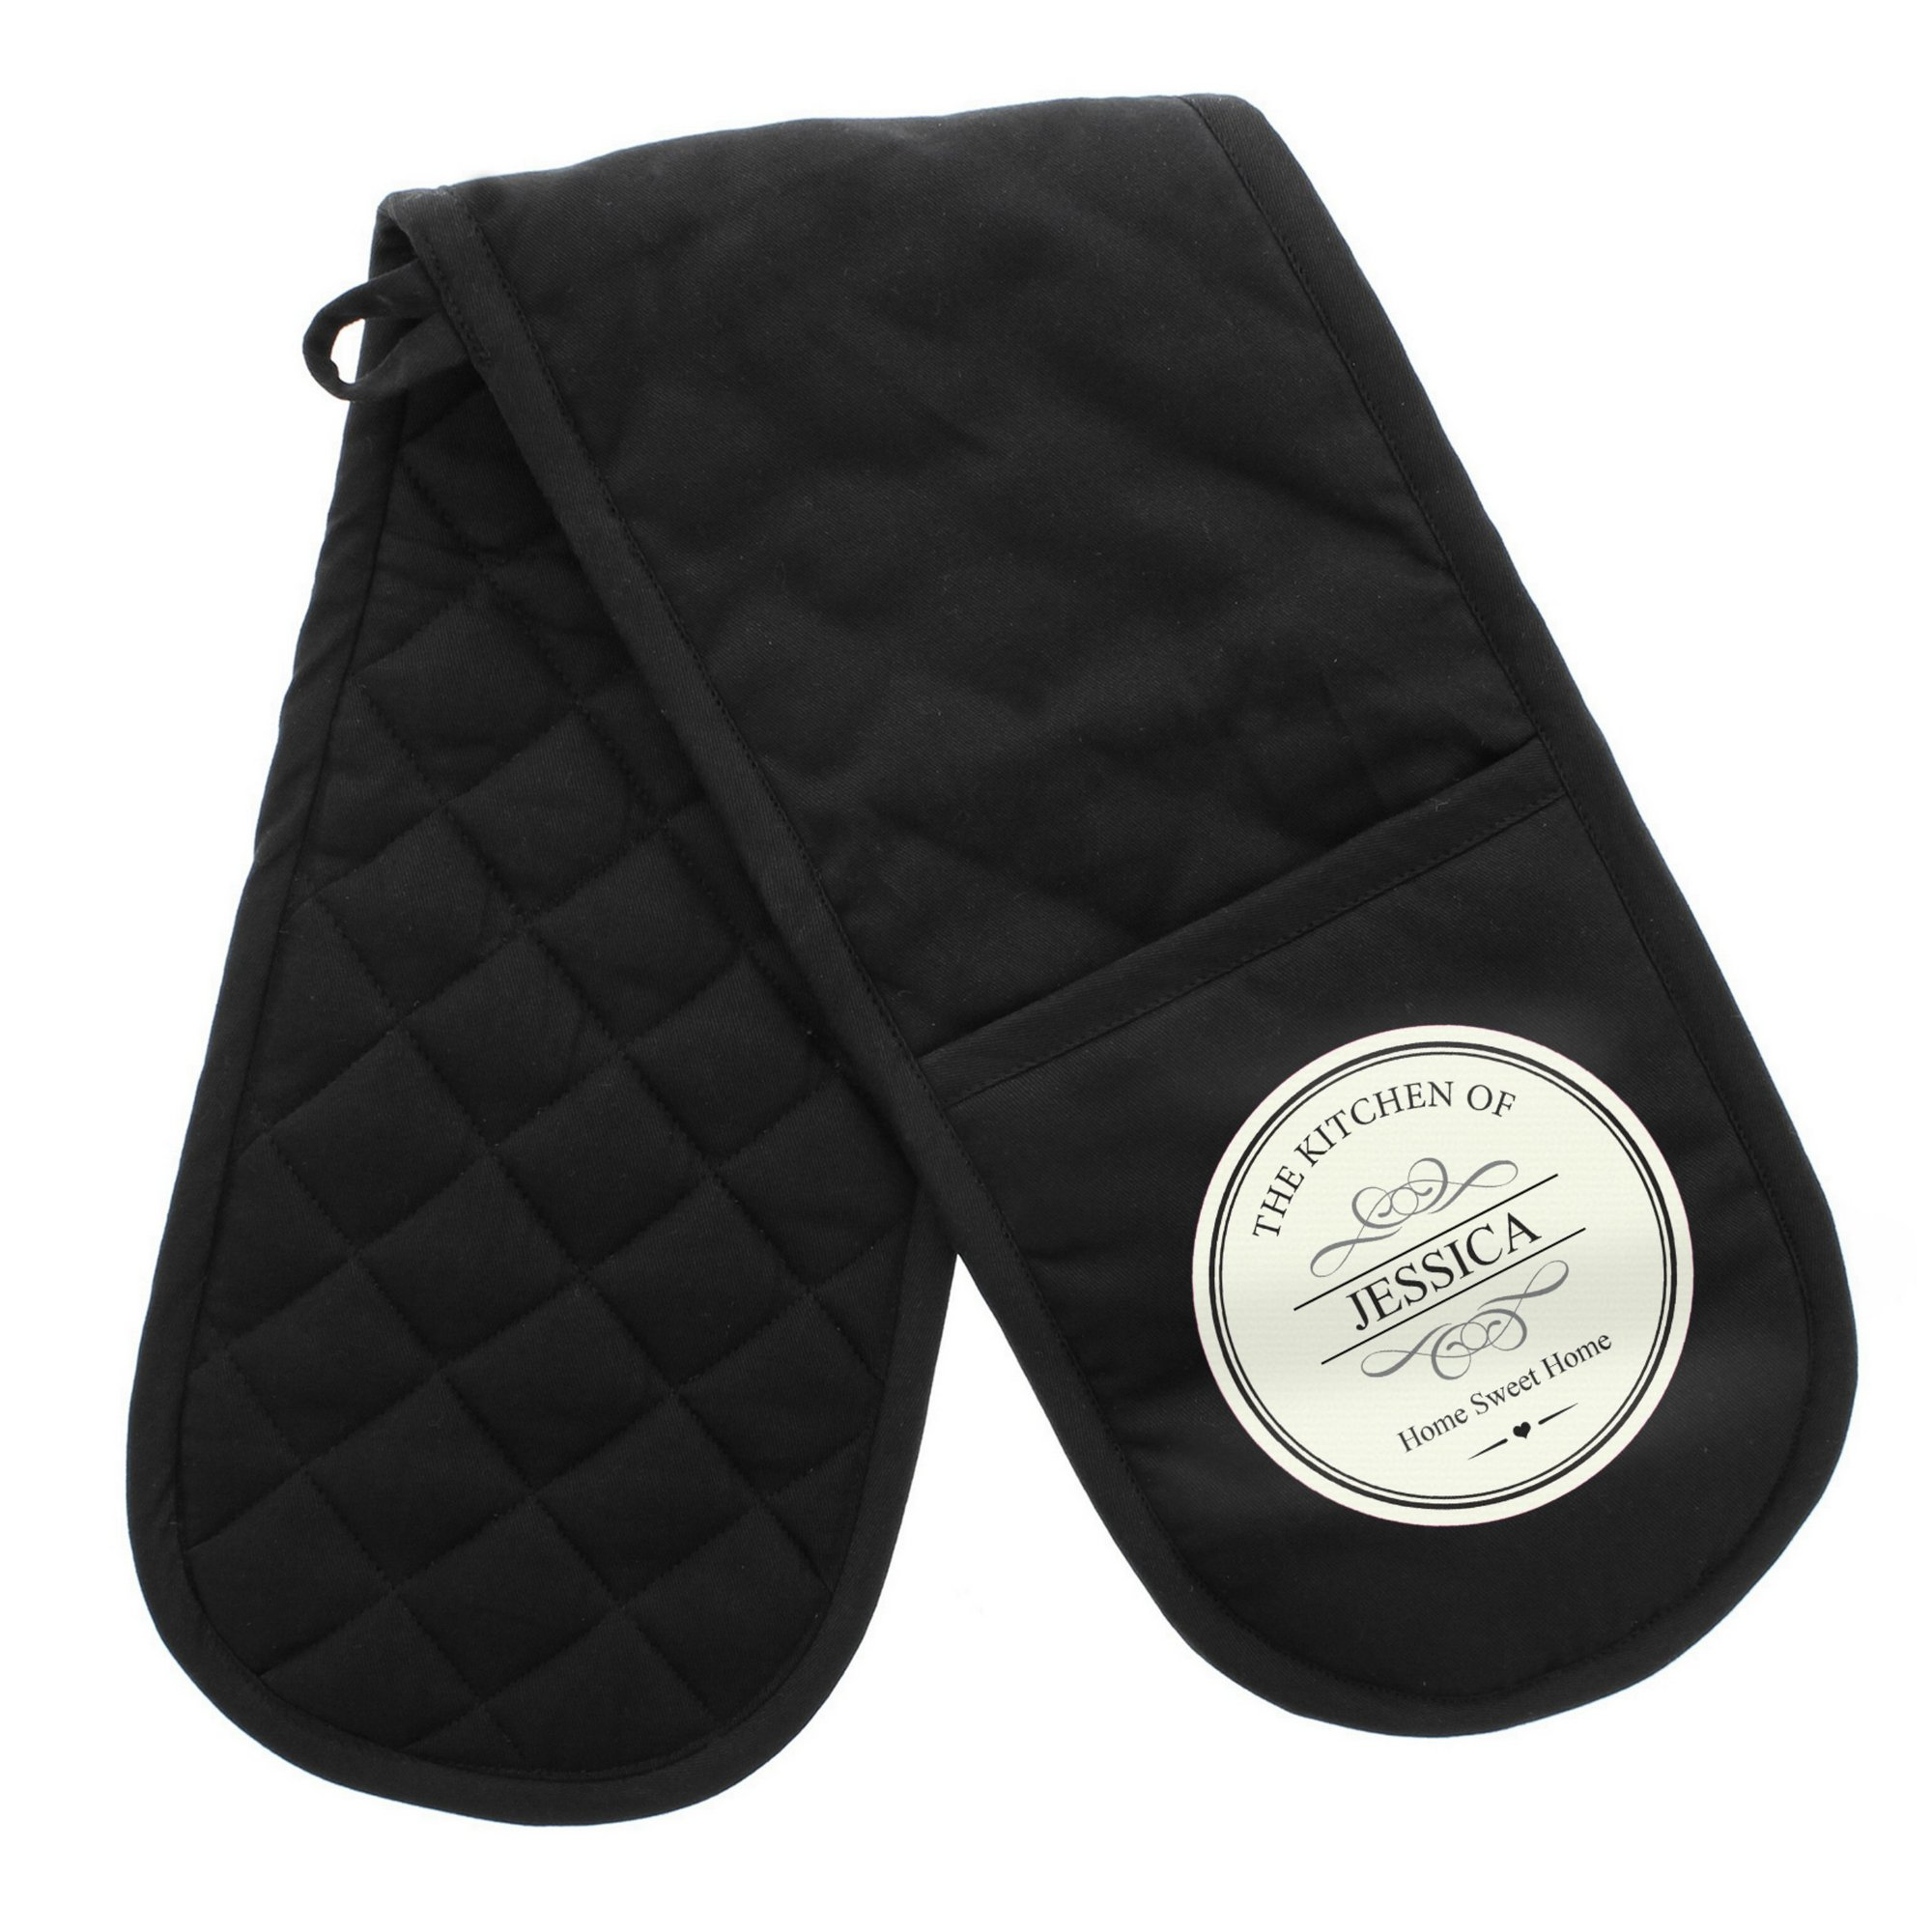 Image of Personalised Decorative Oven Gloves